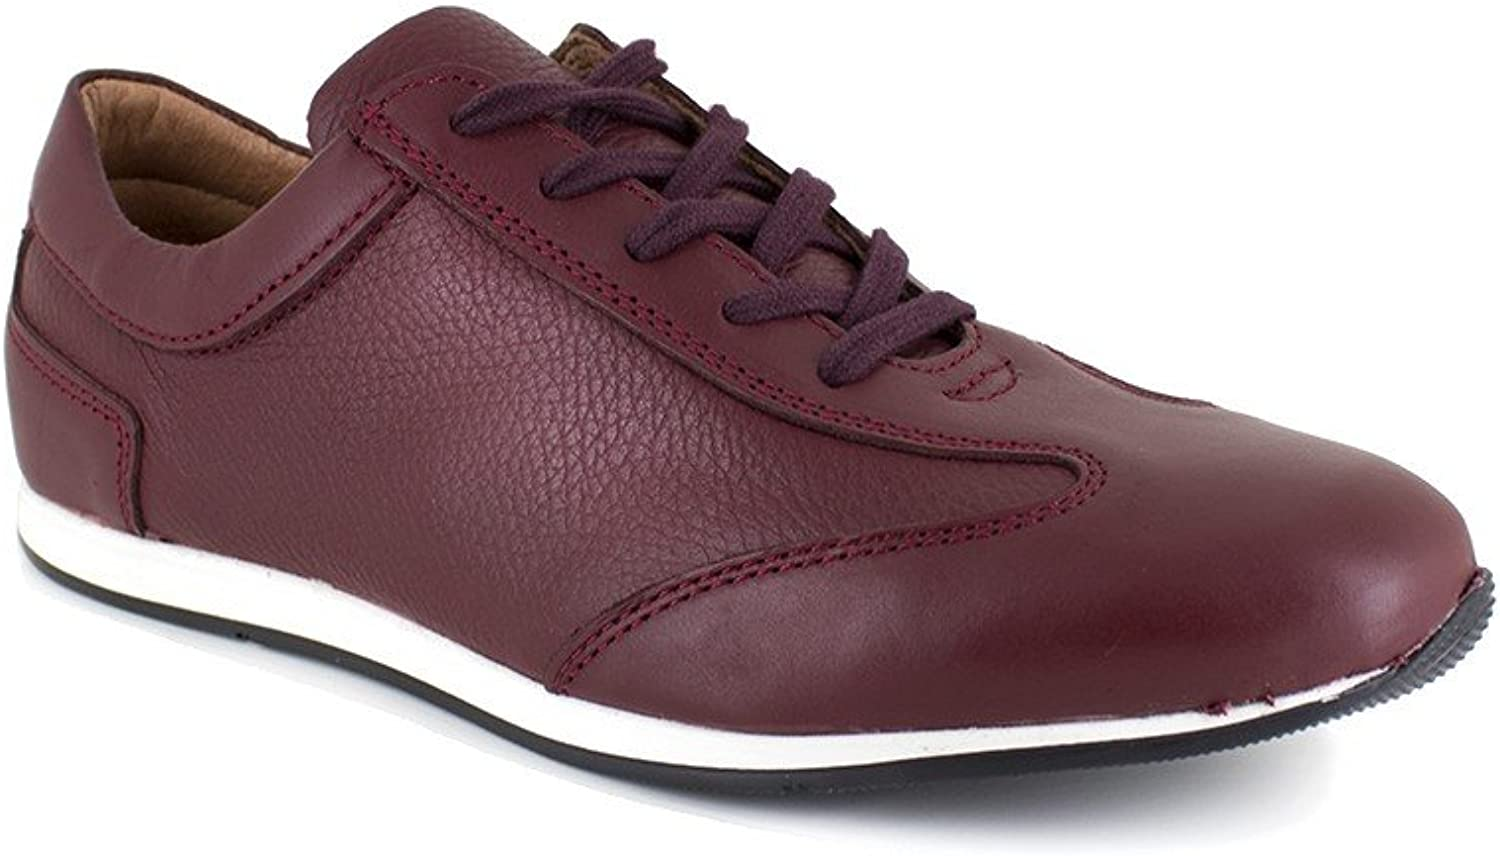 Peter Blade Sneaker Burgundy Leather Cancun